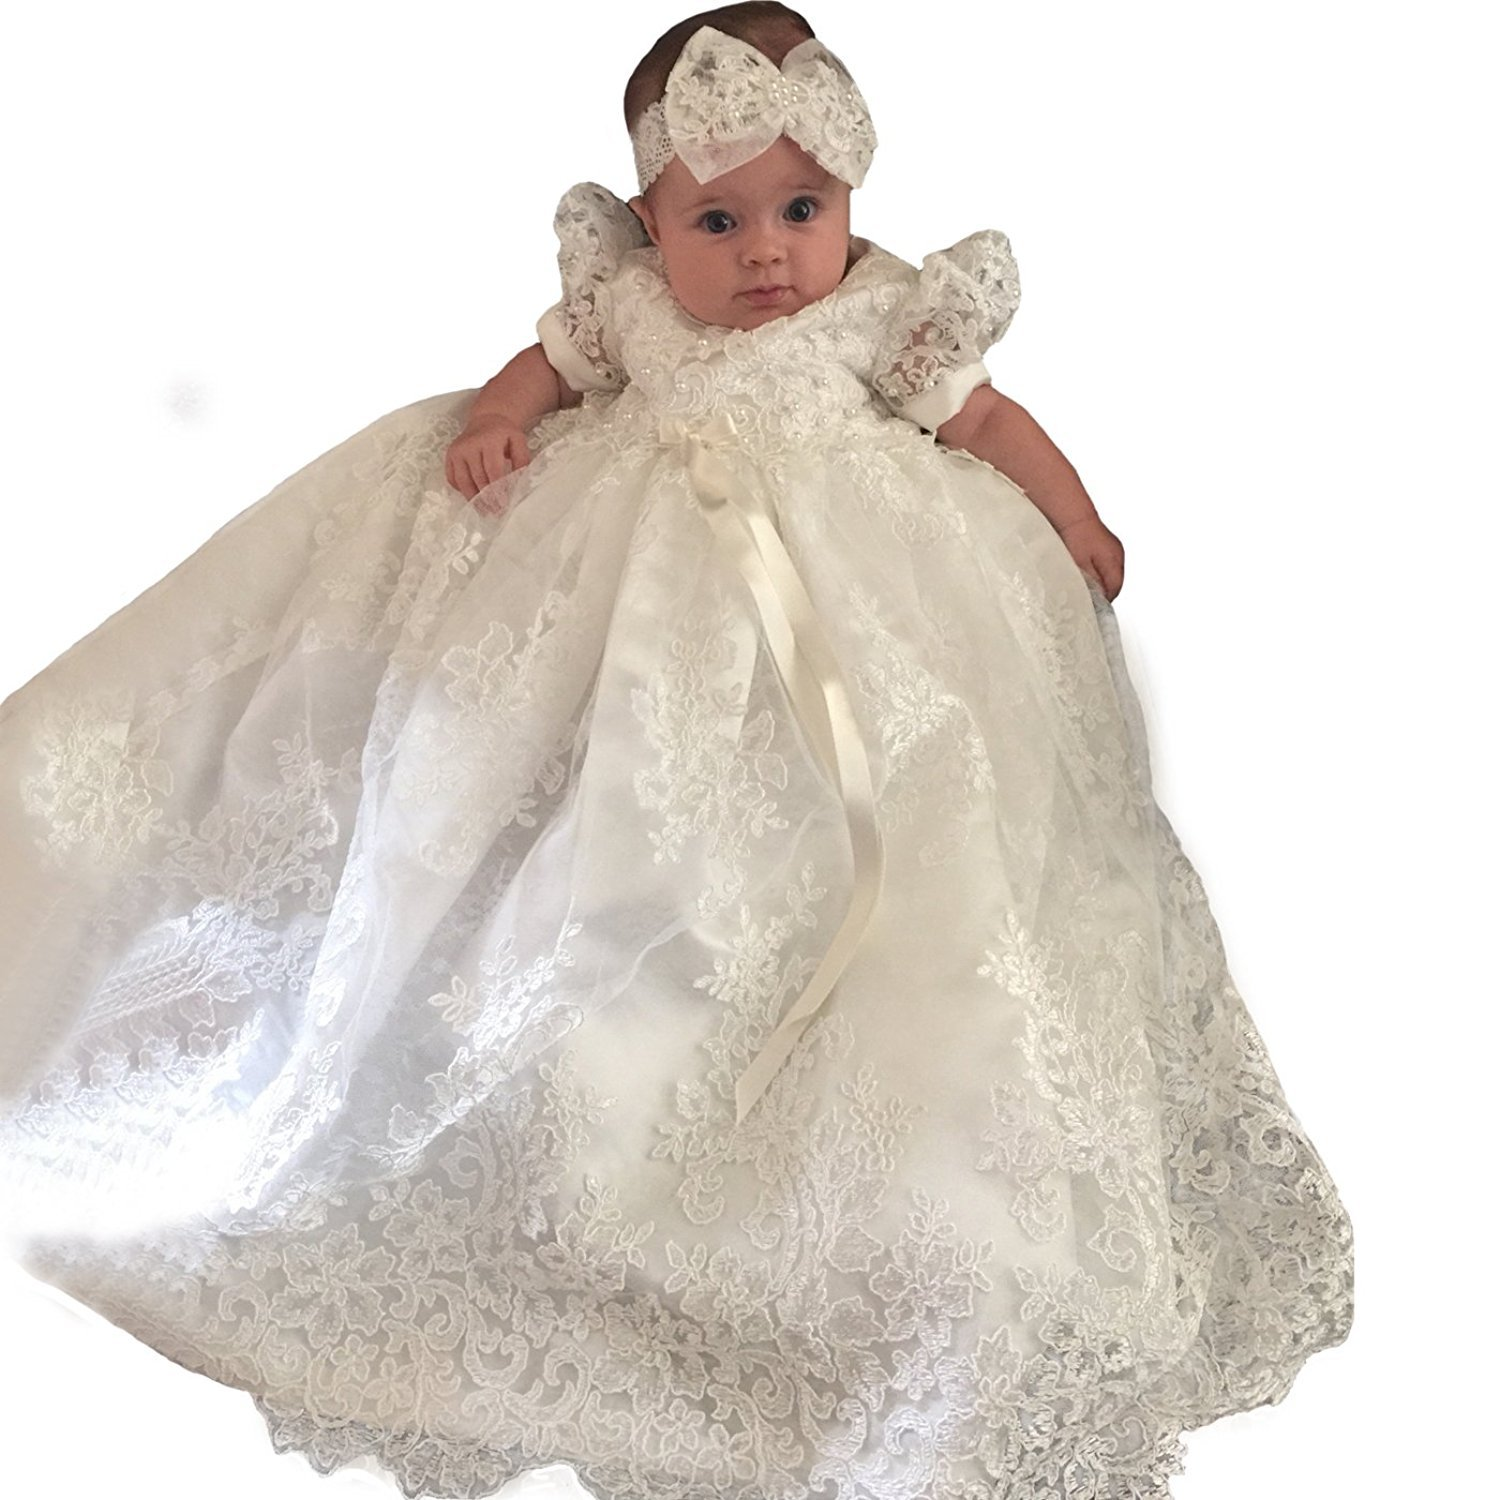 Christening Gown Baby Girl Lace Toddler Dedication Dress for Age 3-24 months CB